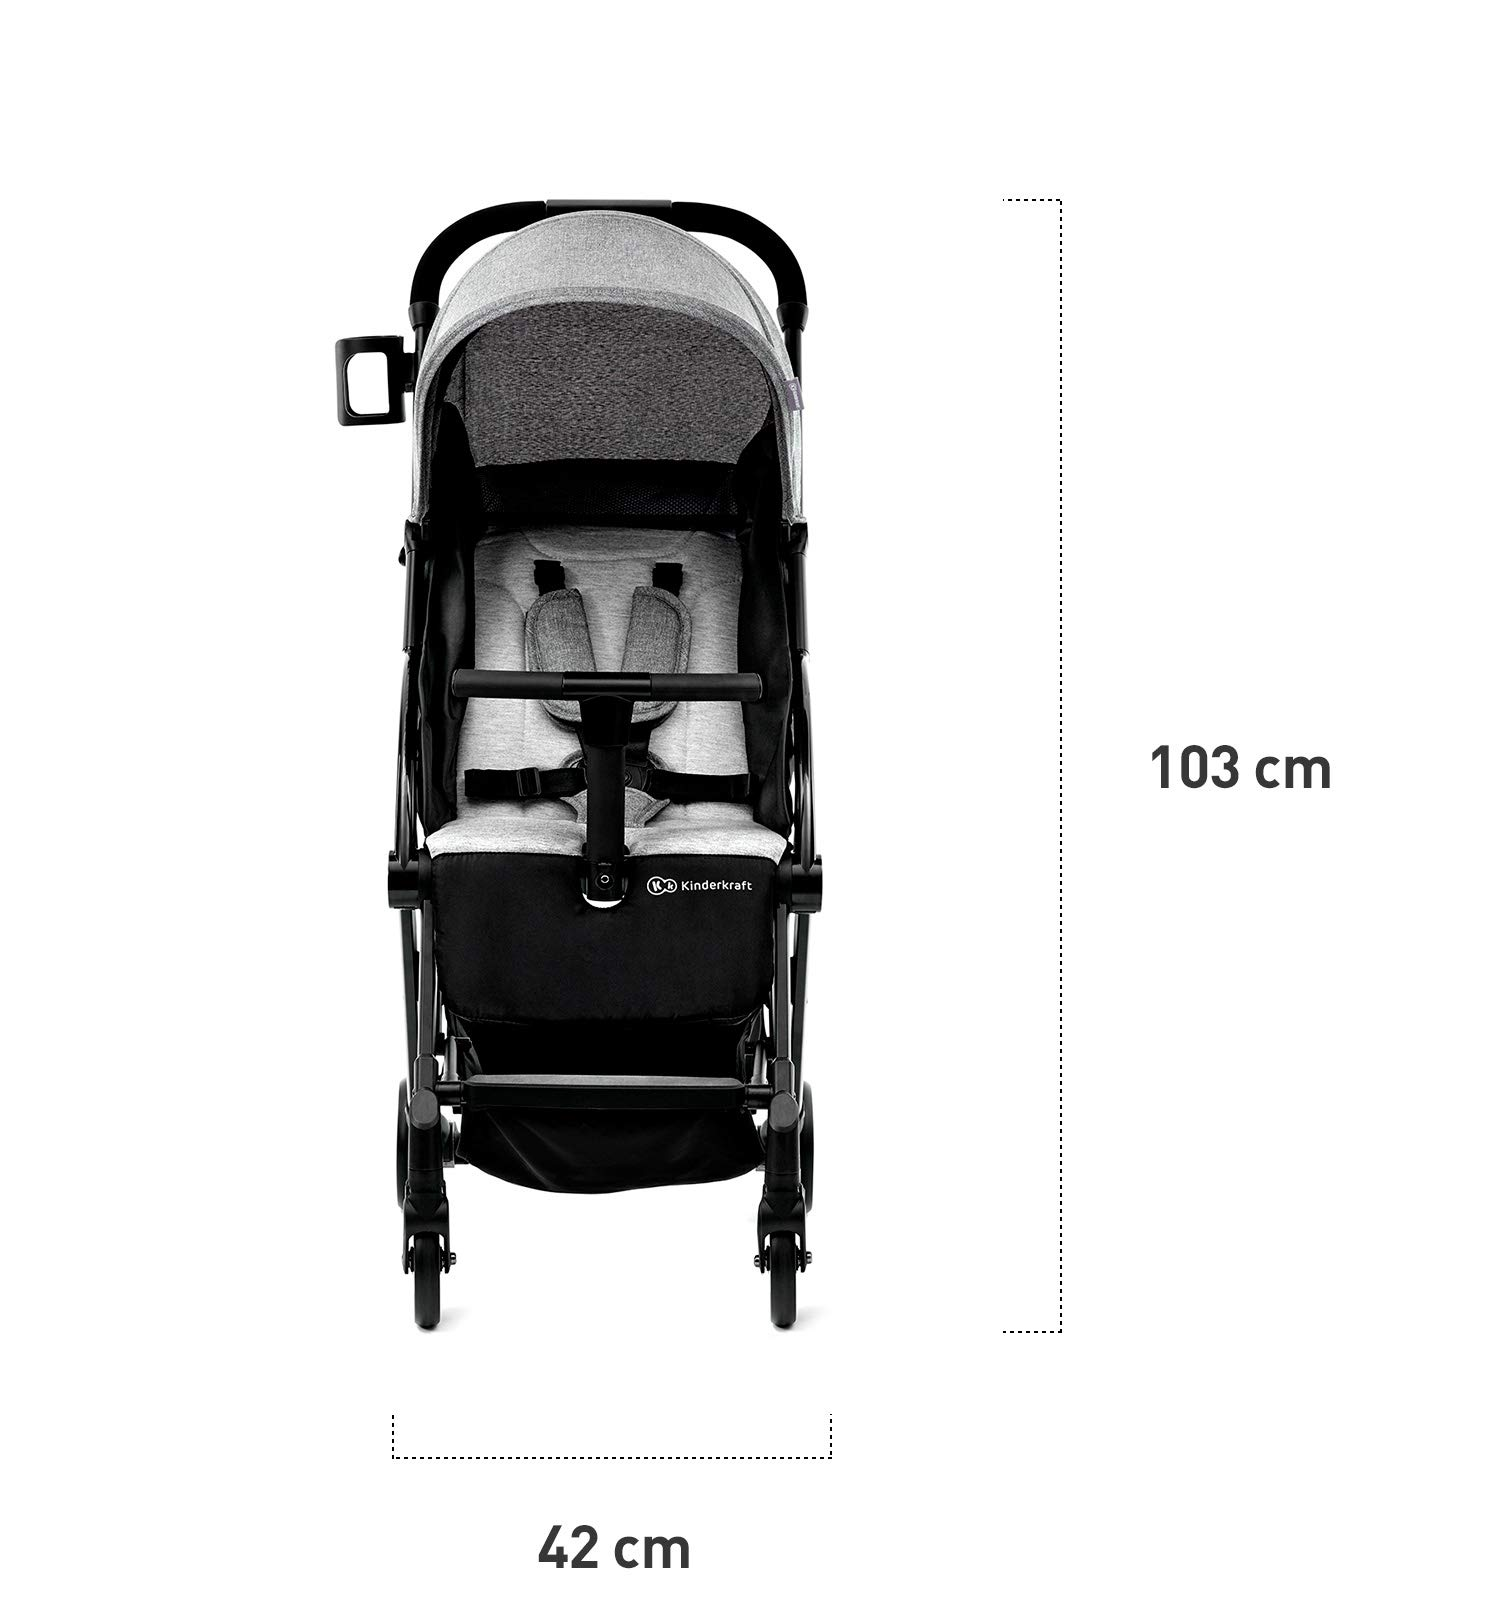 Kinderkraft Lightweight Stroller LITE UP, Baby Pushchair, Buggy, Compact Folding, Ajustable Footrest, Lying Position, with Accessories, Rain Cover, Footmuff, from Birth to 3.5 Years, 0-15 kg, Rosa kk KinderKraft Mechanism for easy folding with one hand After folding, the stroller resembles a briefcase You do not have to stop and move around the stroller to make eye contact with the child 7